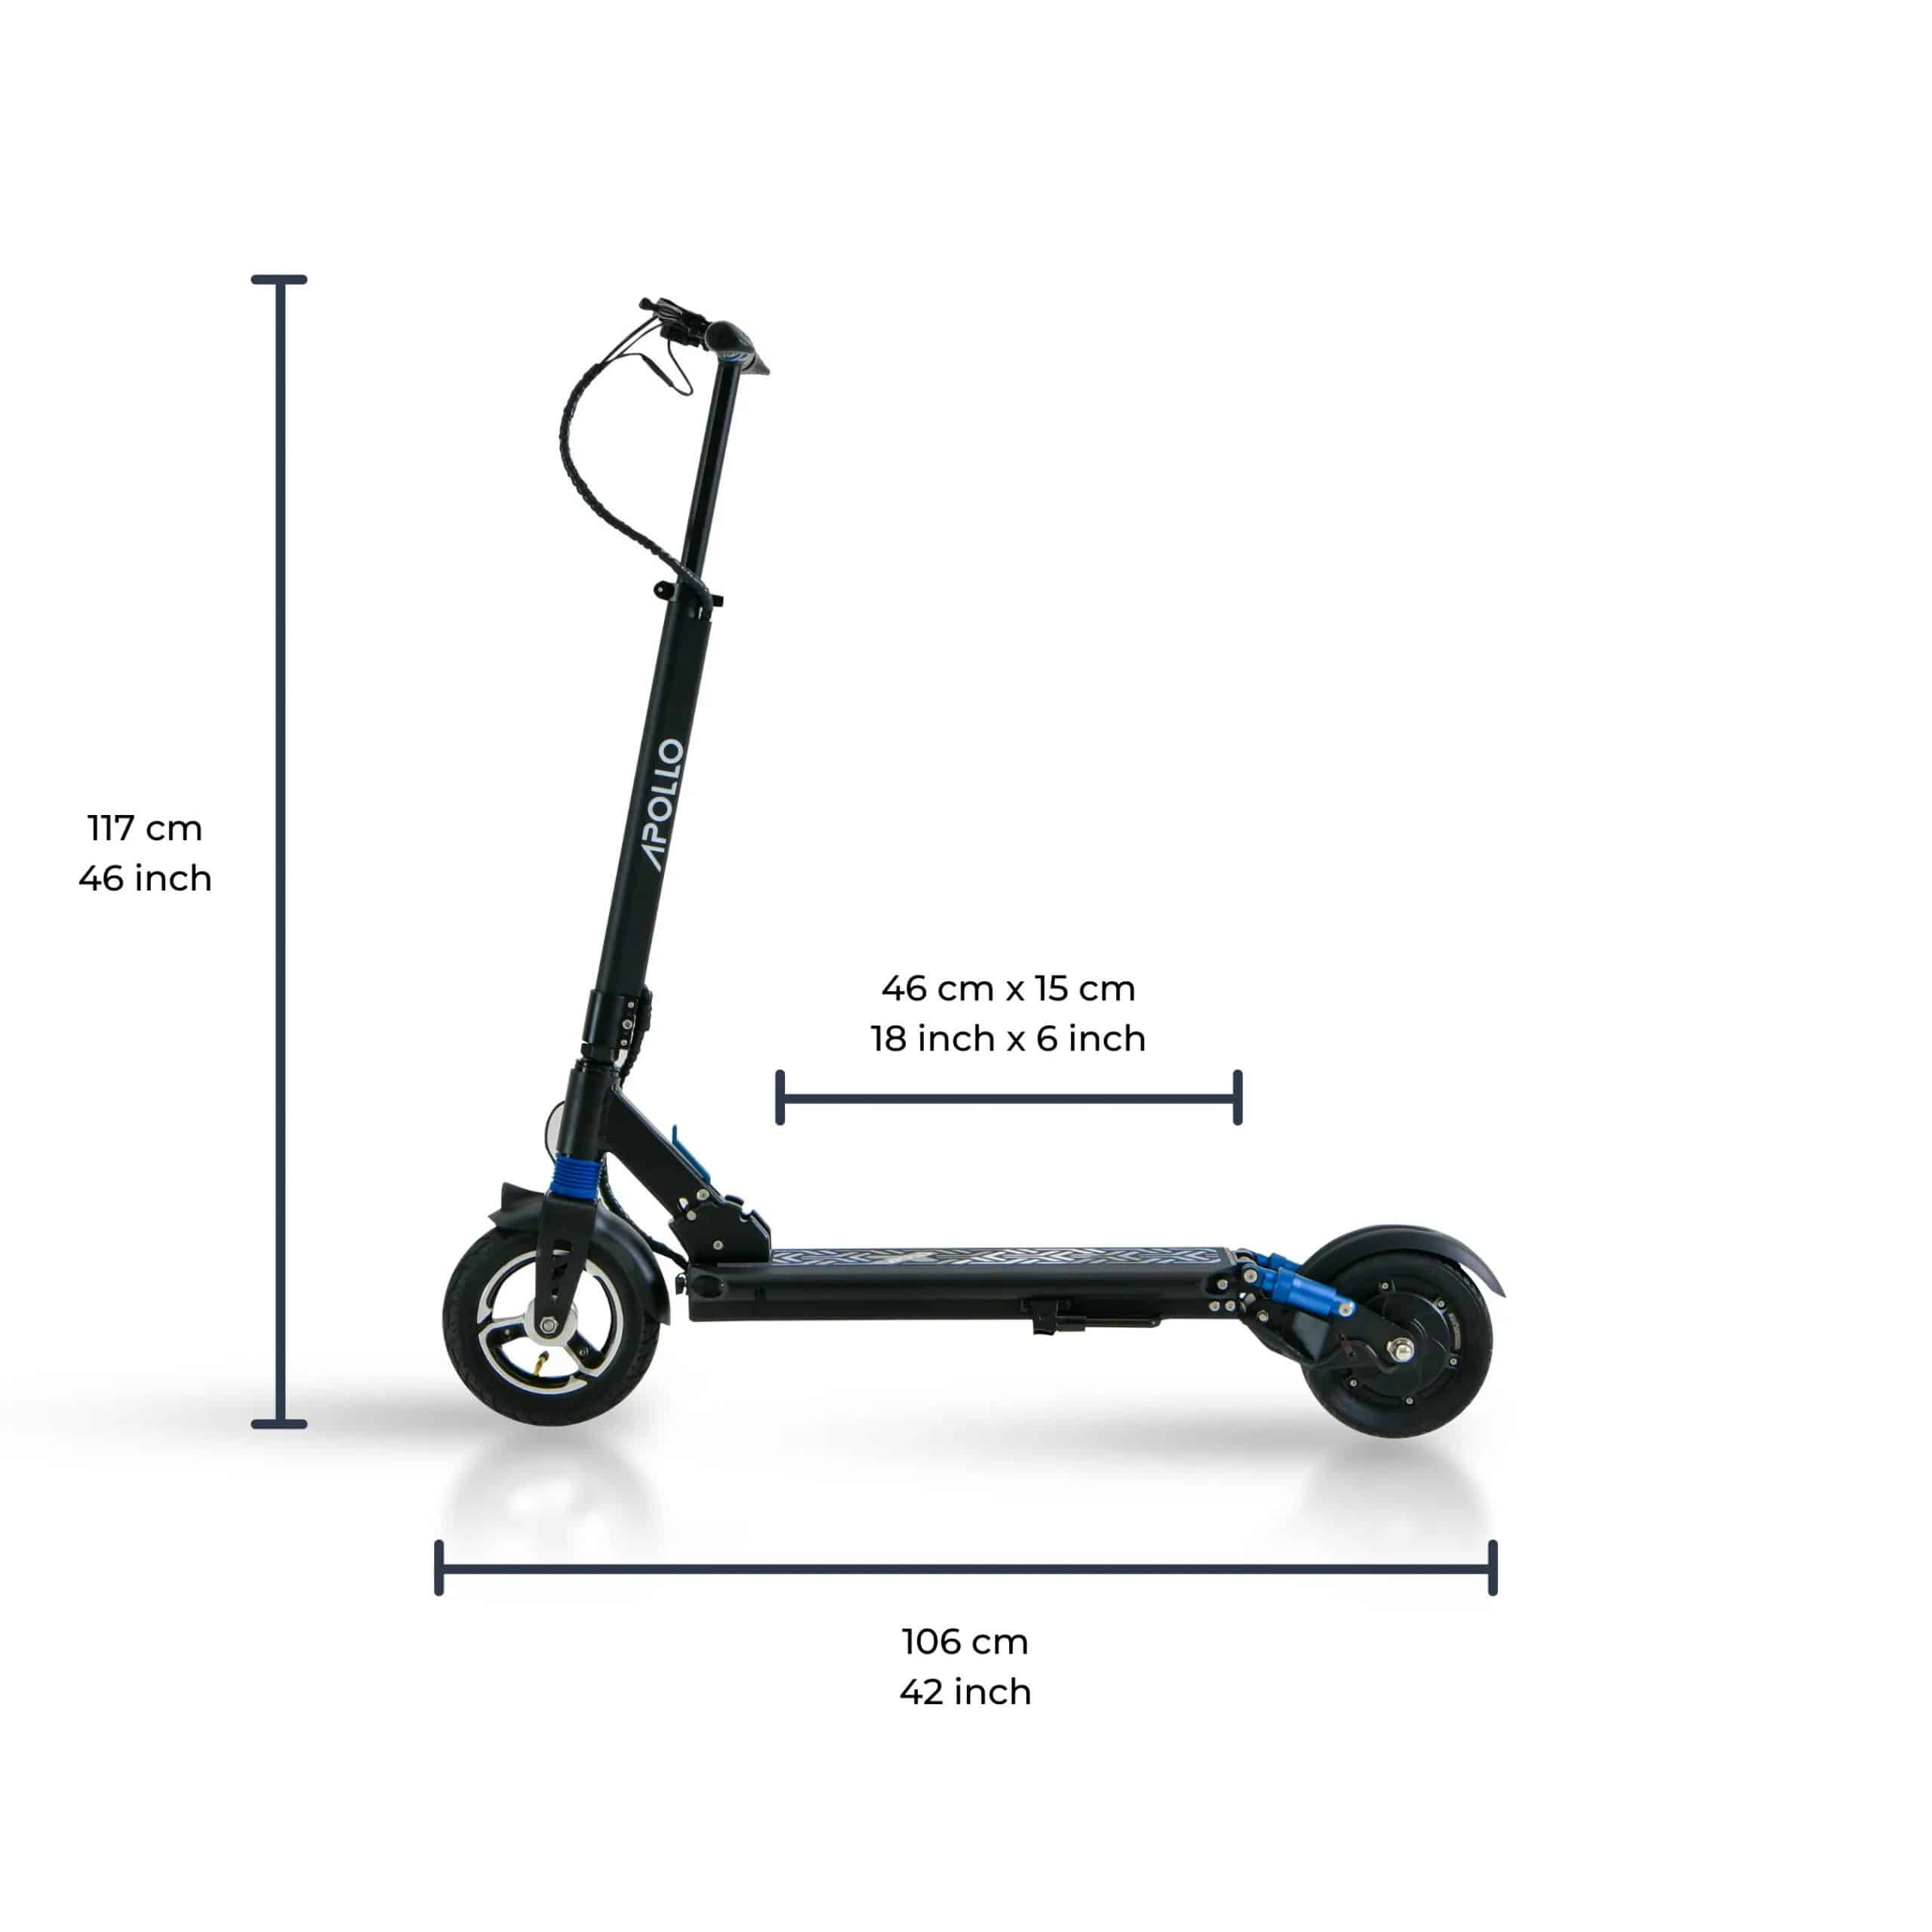 Apollo Light Scooter Specifications